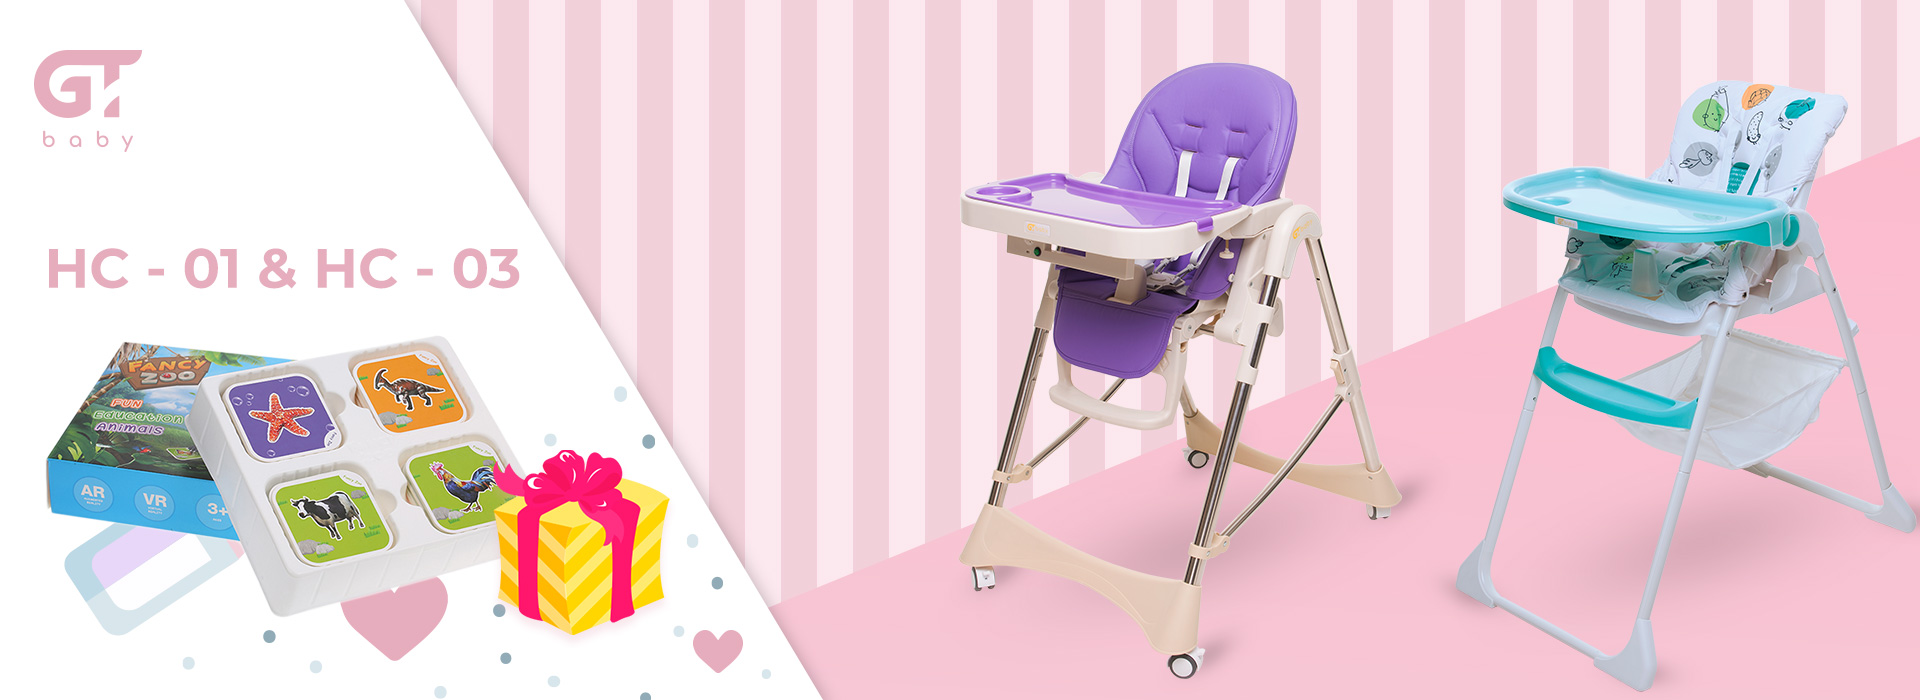 Stock! Game Fancy Zoo as a gift to the GT Baby highchairs!